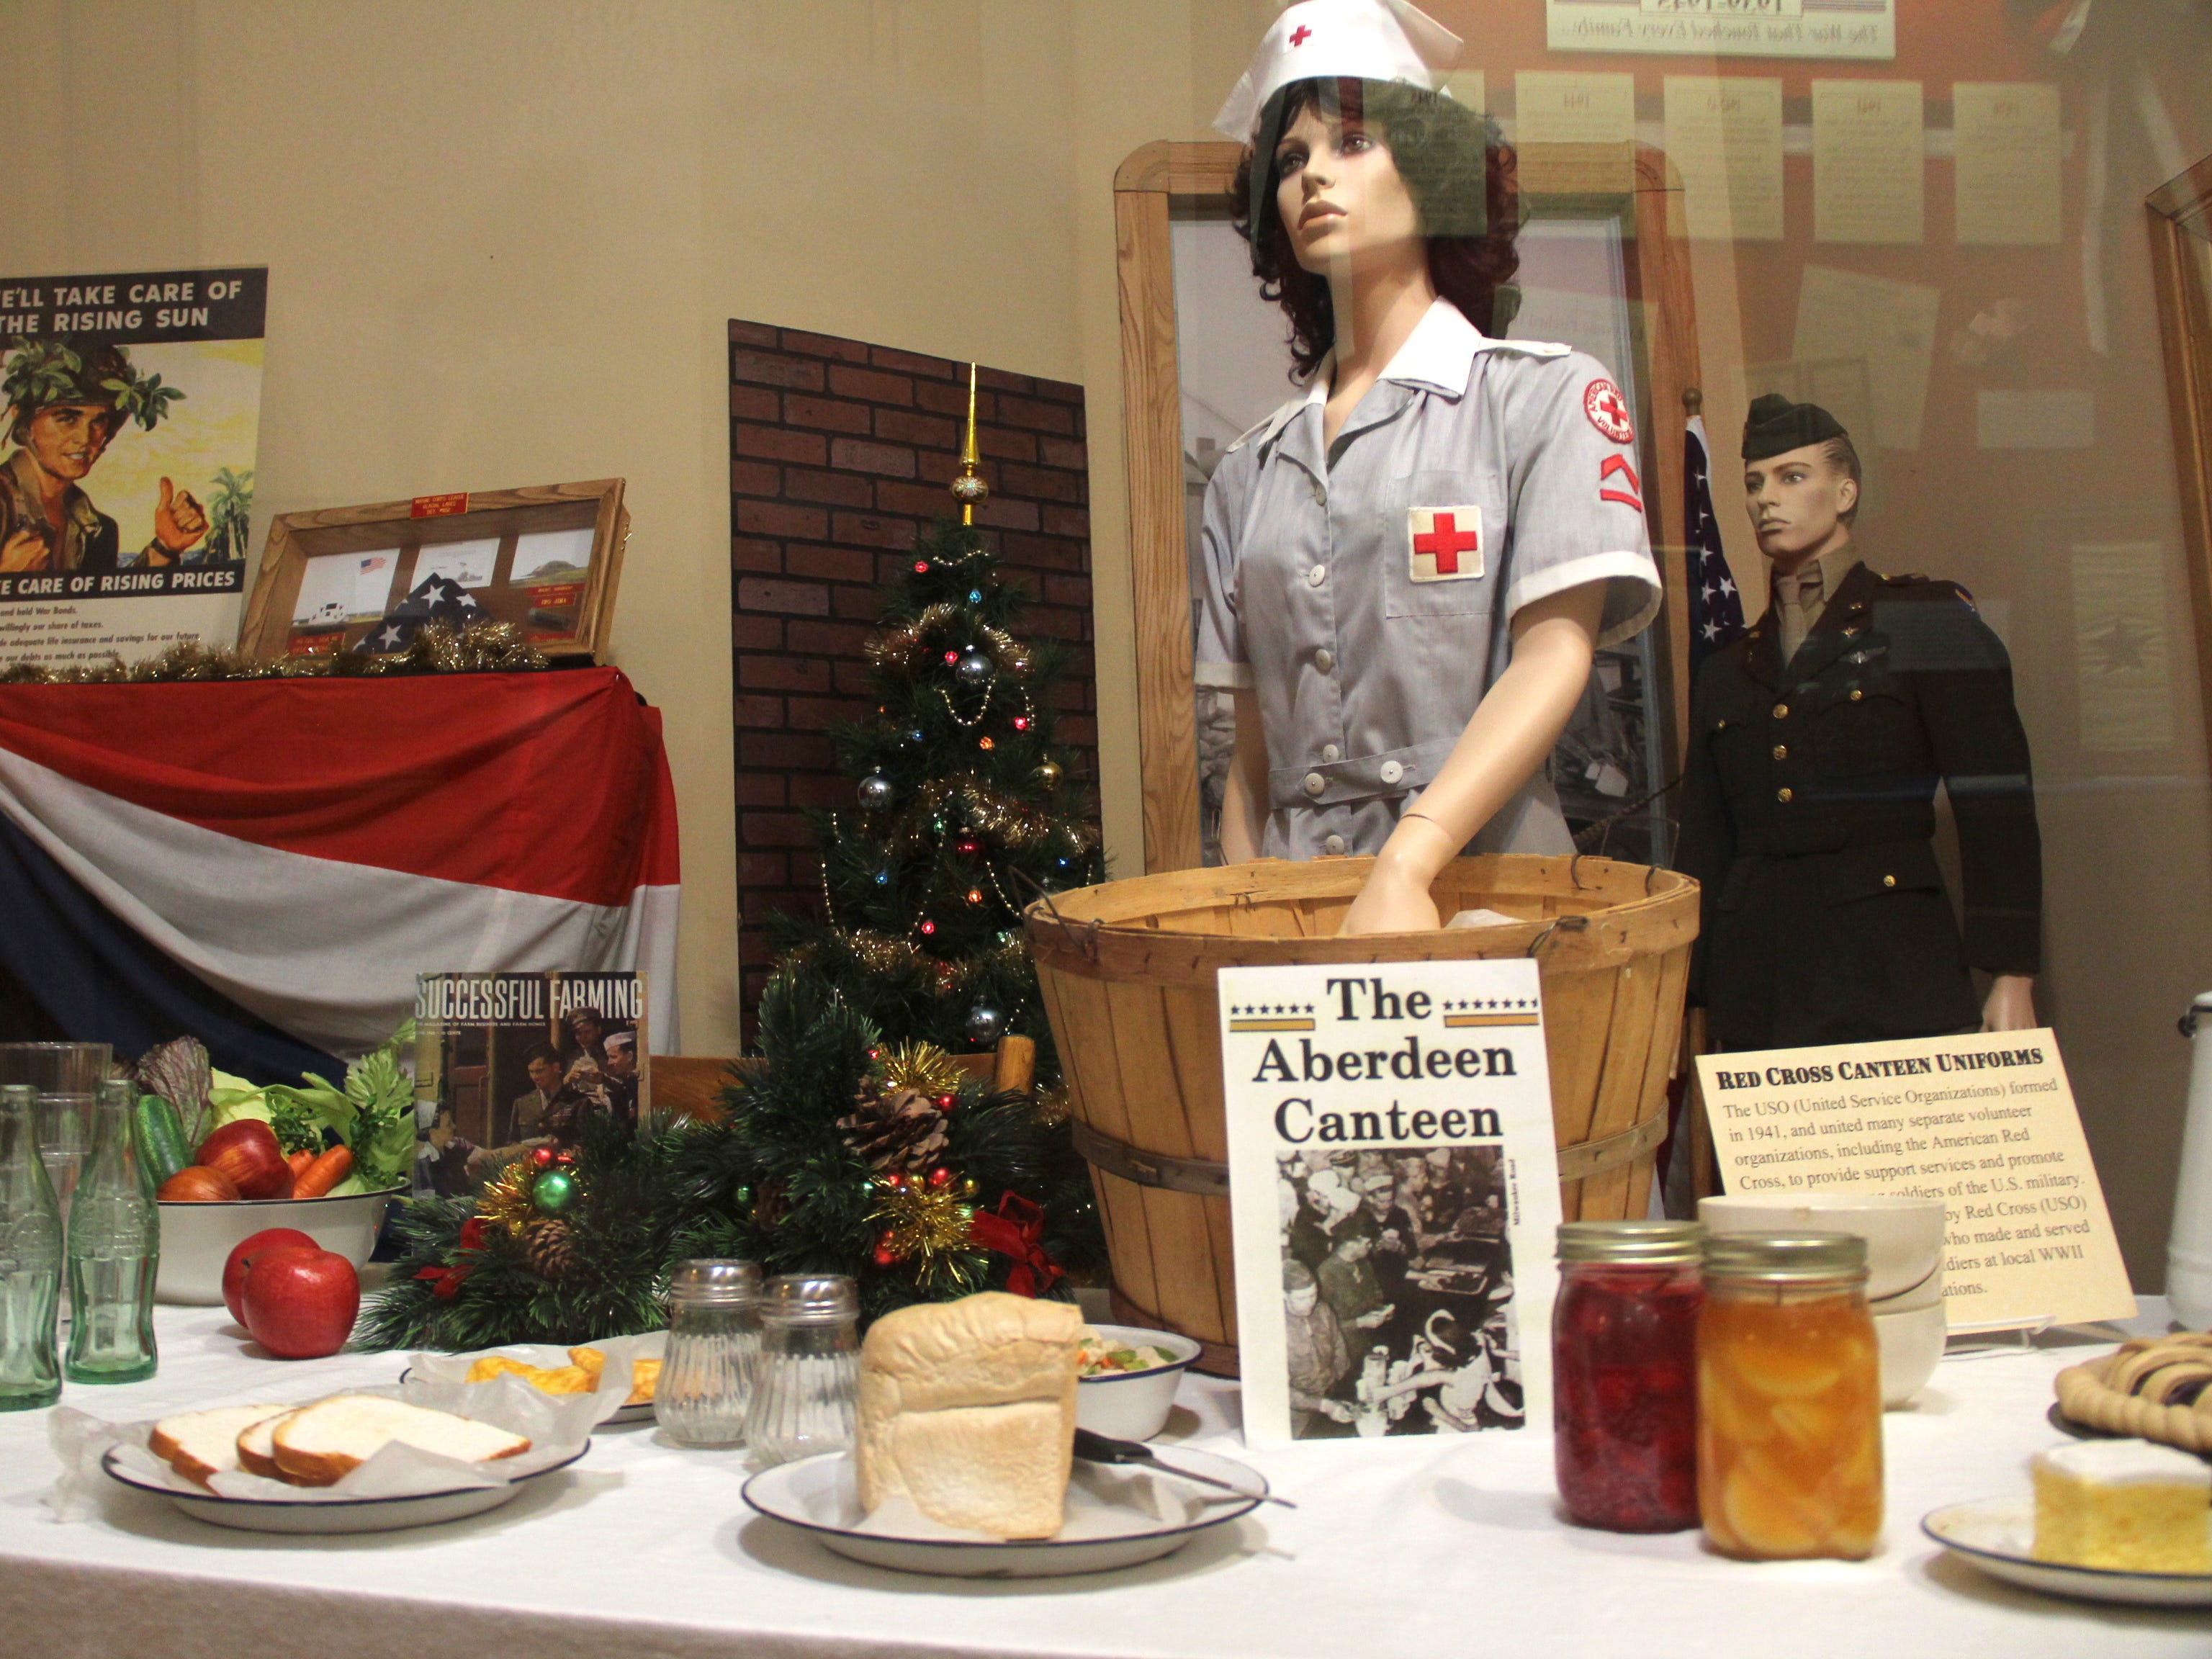 A display at the Dakotah Prairie Museum depicts the Aberdeen Pheasant Canteen during World War II. The site at the Milwaukee Road Depot in Aberdeen served pheasant sandwiches to more than 586,000 U.S. soldiers.